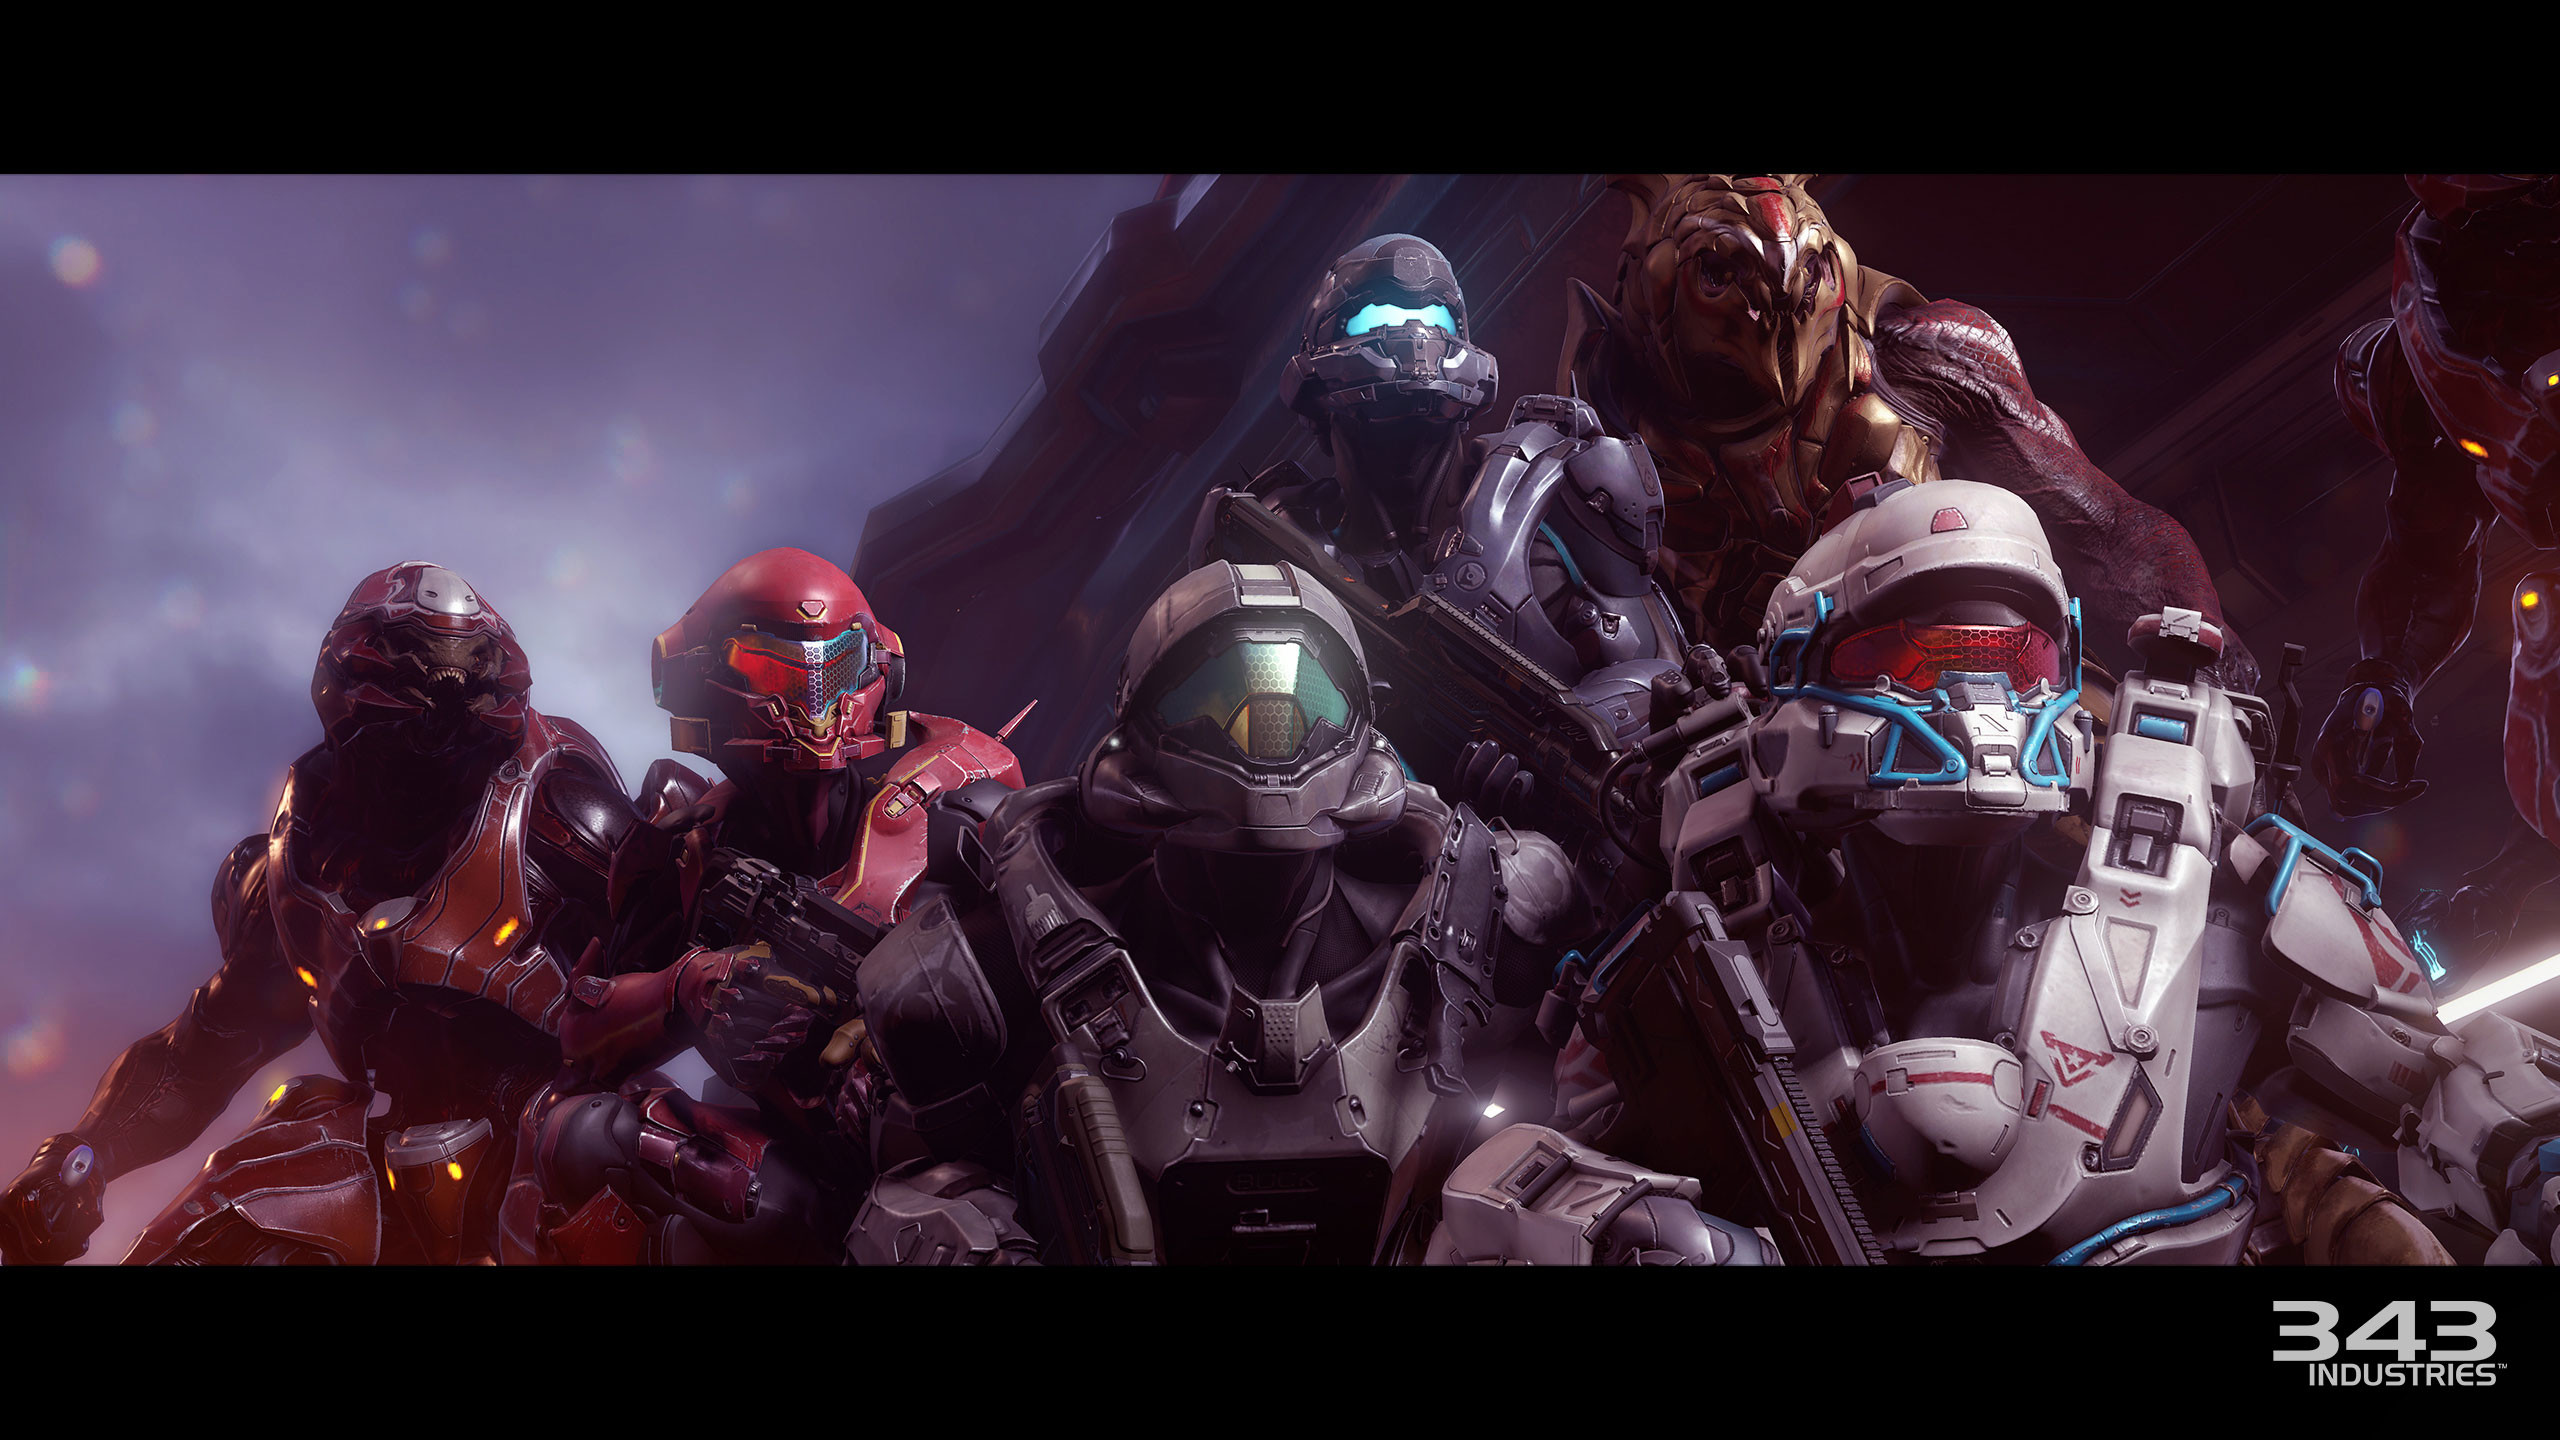 Should the Sword of Sanghelios models be changed?   Halo 5: Guardians    Forums   Halo – Official Site